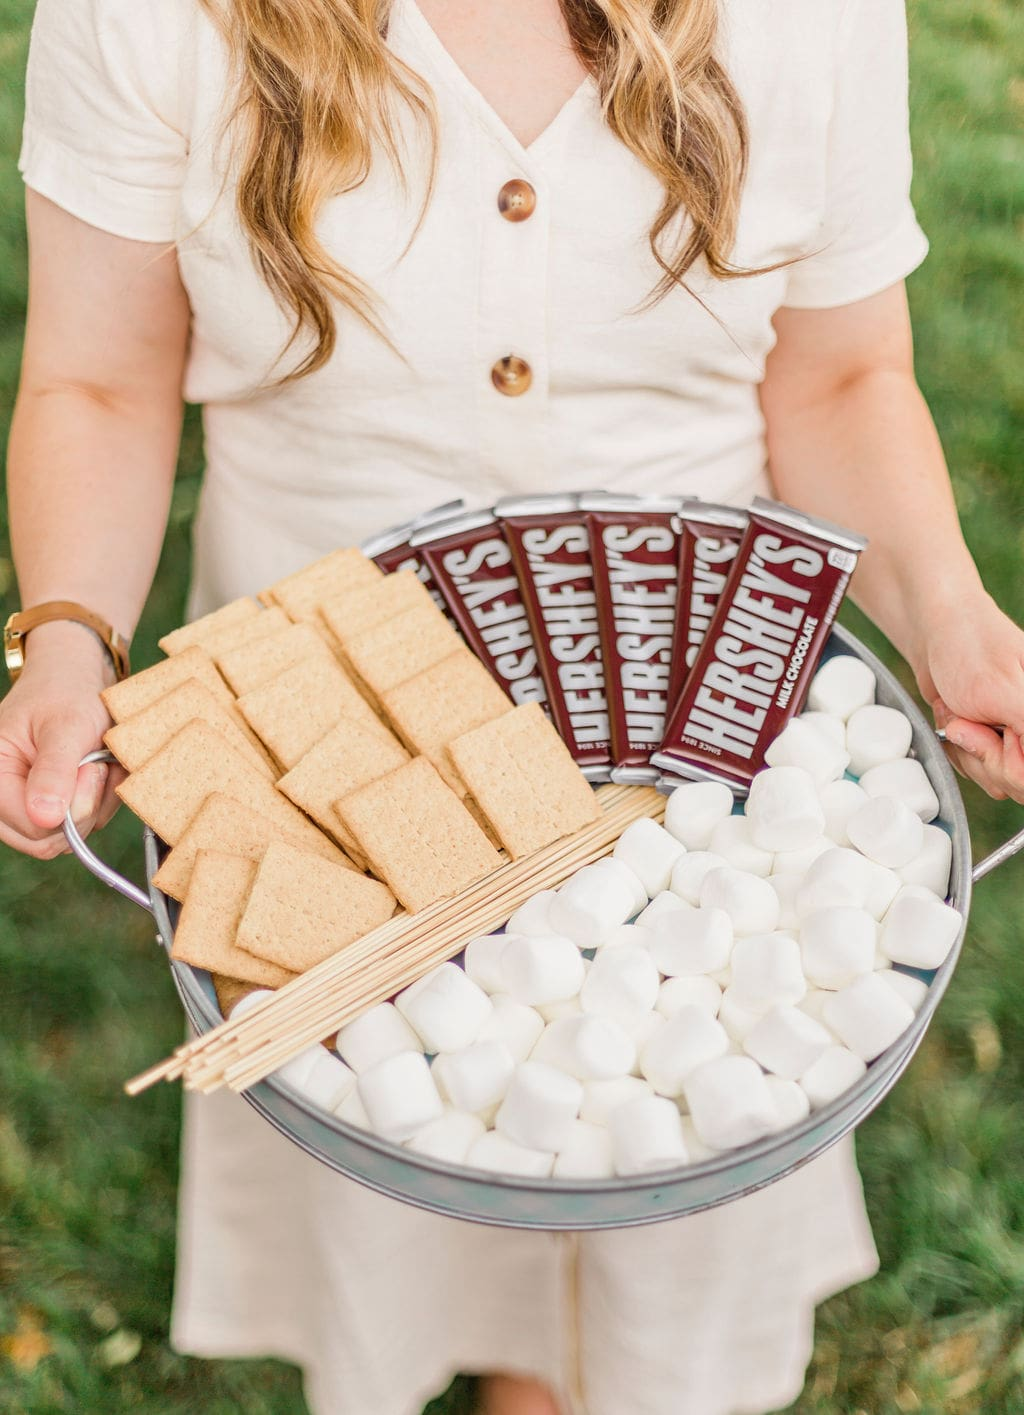 Summer S'mores Party